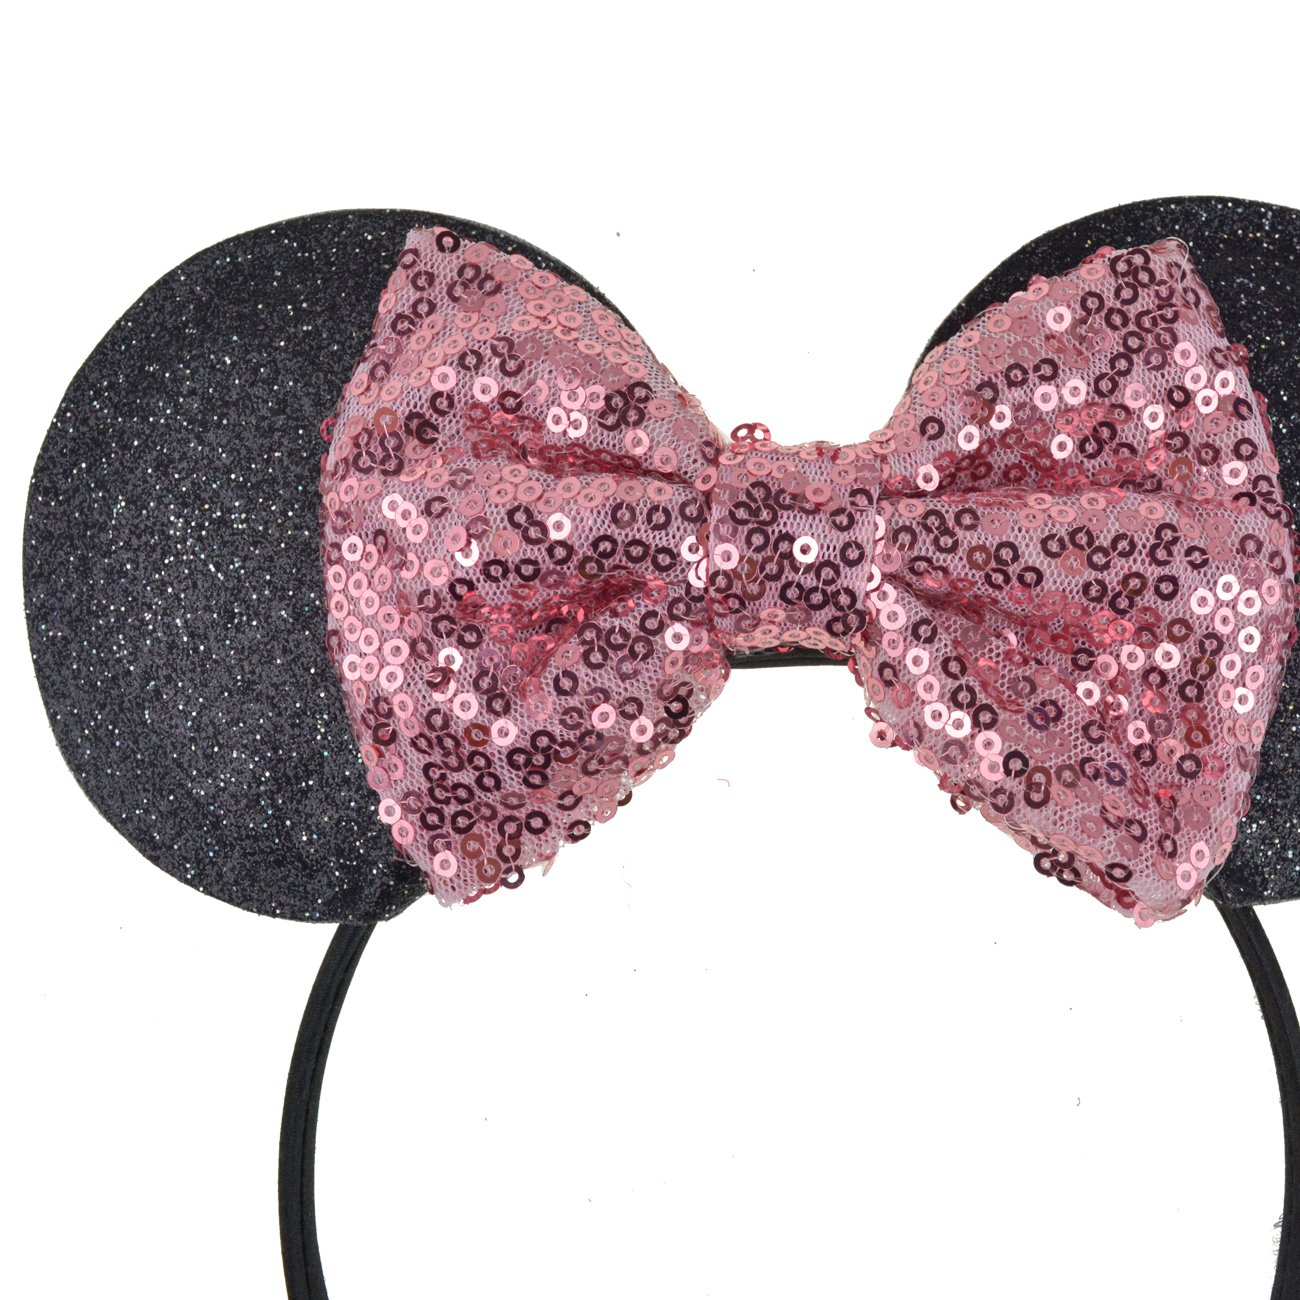 DRESHOW Mickey Ears Headbands Sequin Hair Band Accessories for Women Girls Cosplay Party by DRESHOW (Image #2)